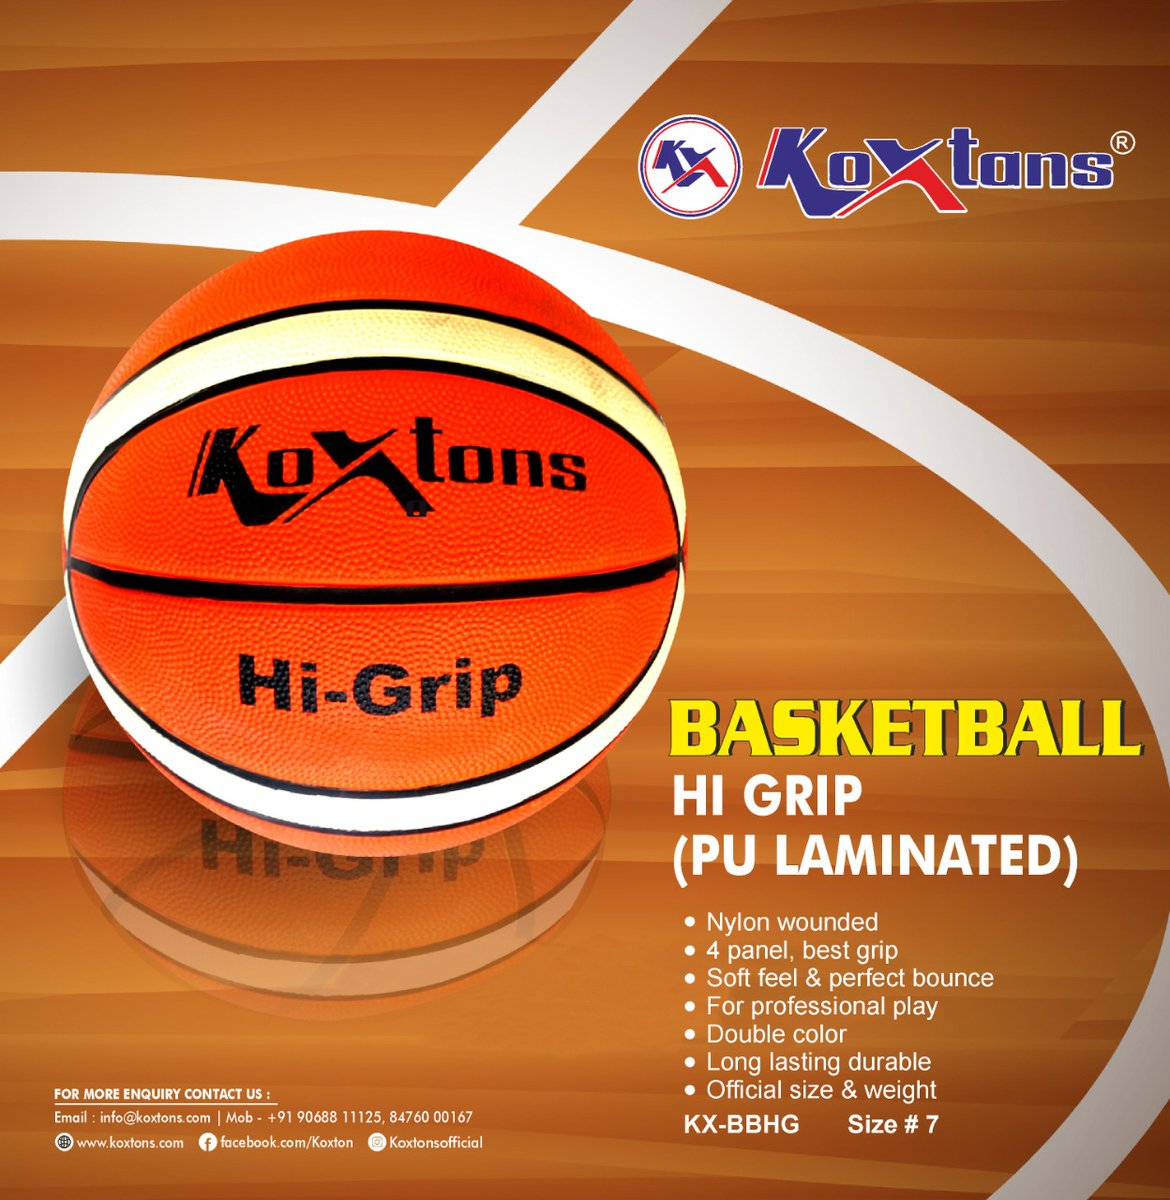 Bring your game to the next level with the KOXTONS HI GRIP (PU LIMINATED )BASKETBALL. This basketball gives you the advantage of aligning your skills and dedication with a long-lasting piece of equipment that is specifically designed to improve your handling and ball control. https://t.co/6GG1YSFNHm